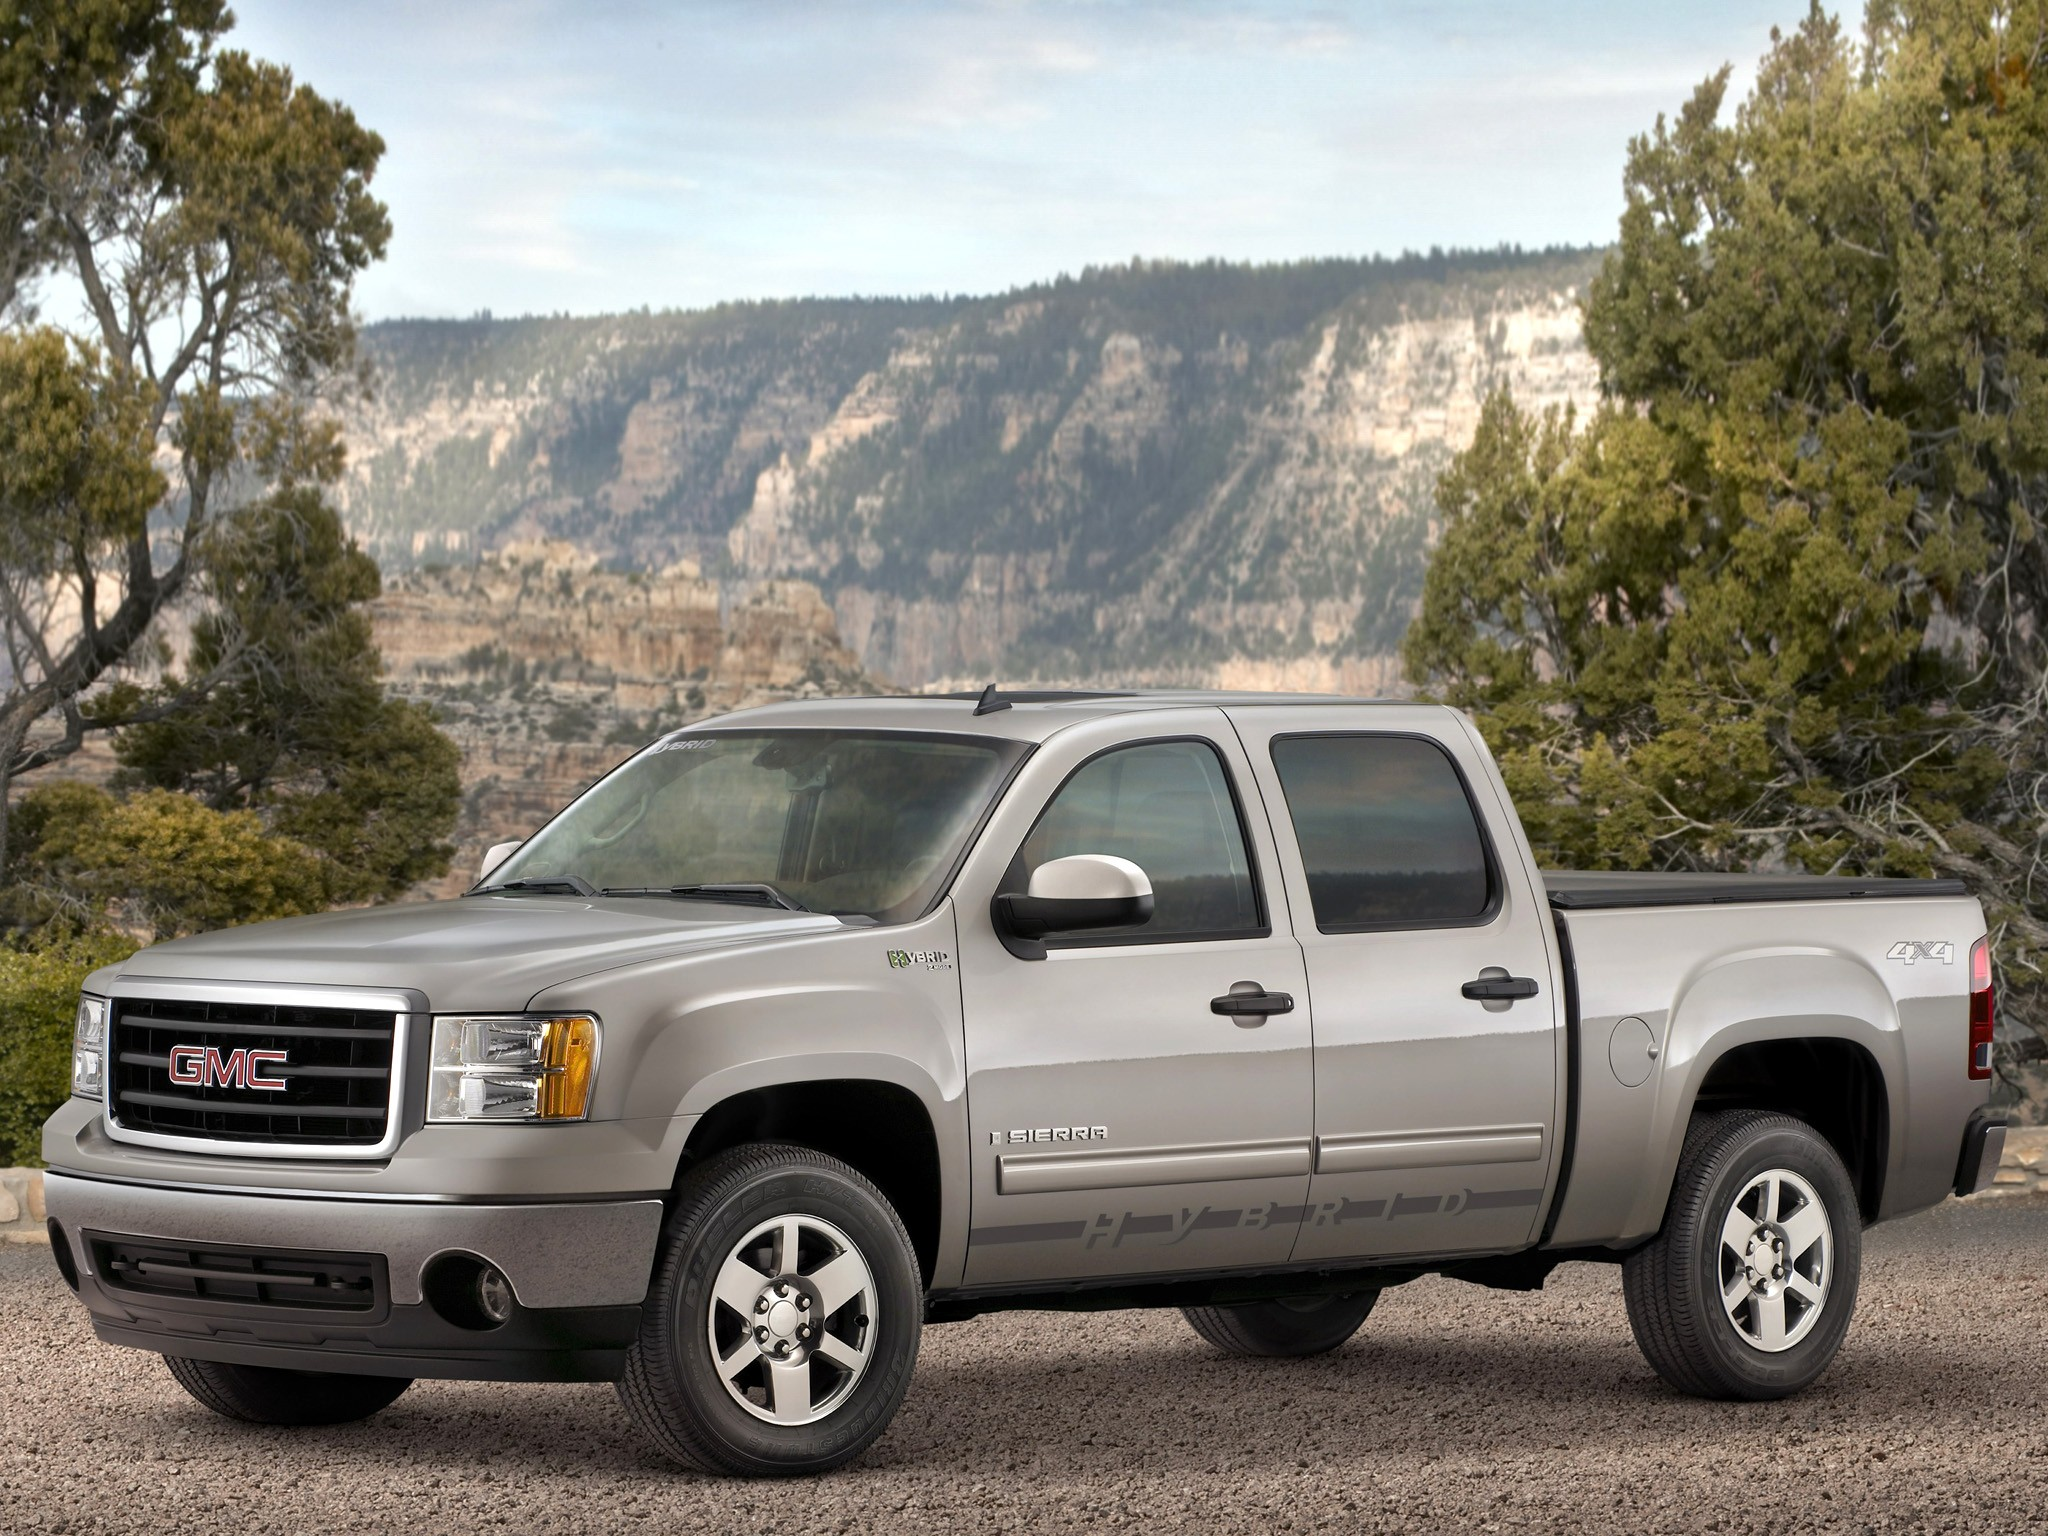 GMC Sierra 1500 Crew Cab specs & photos - 2008, 2009, 2010 ...